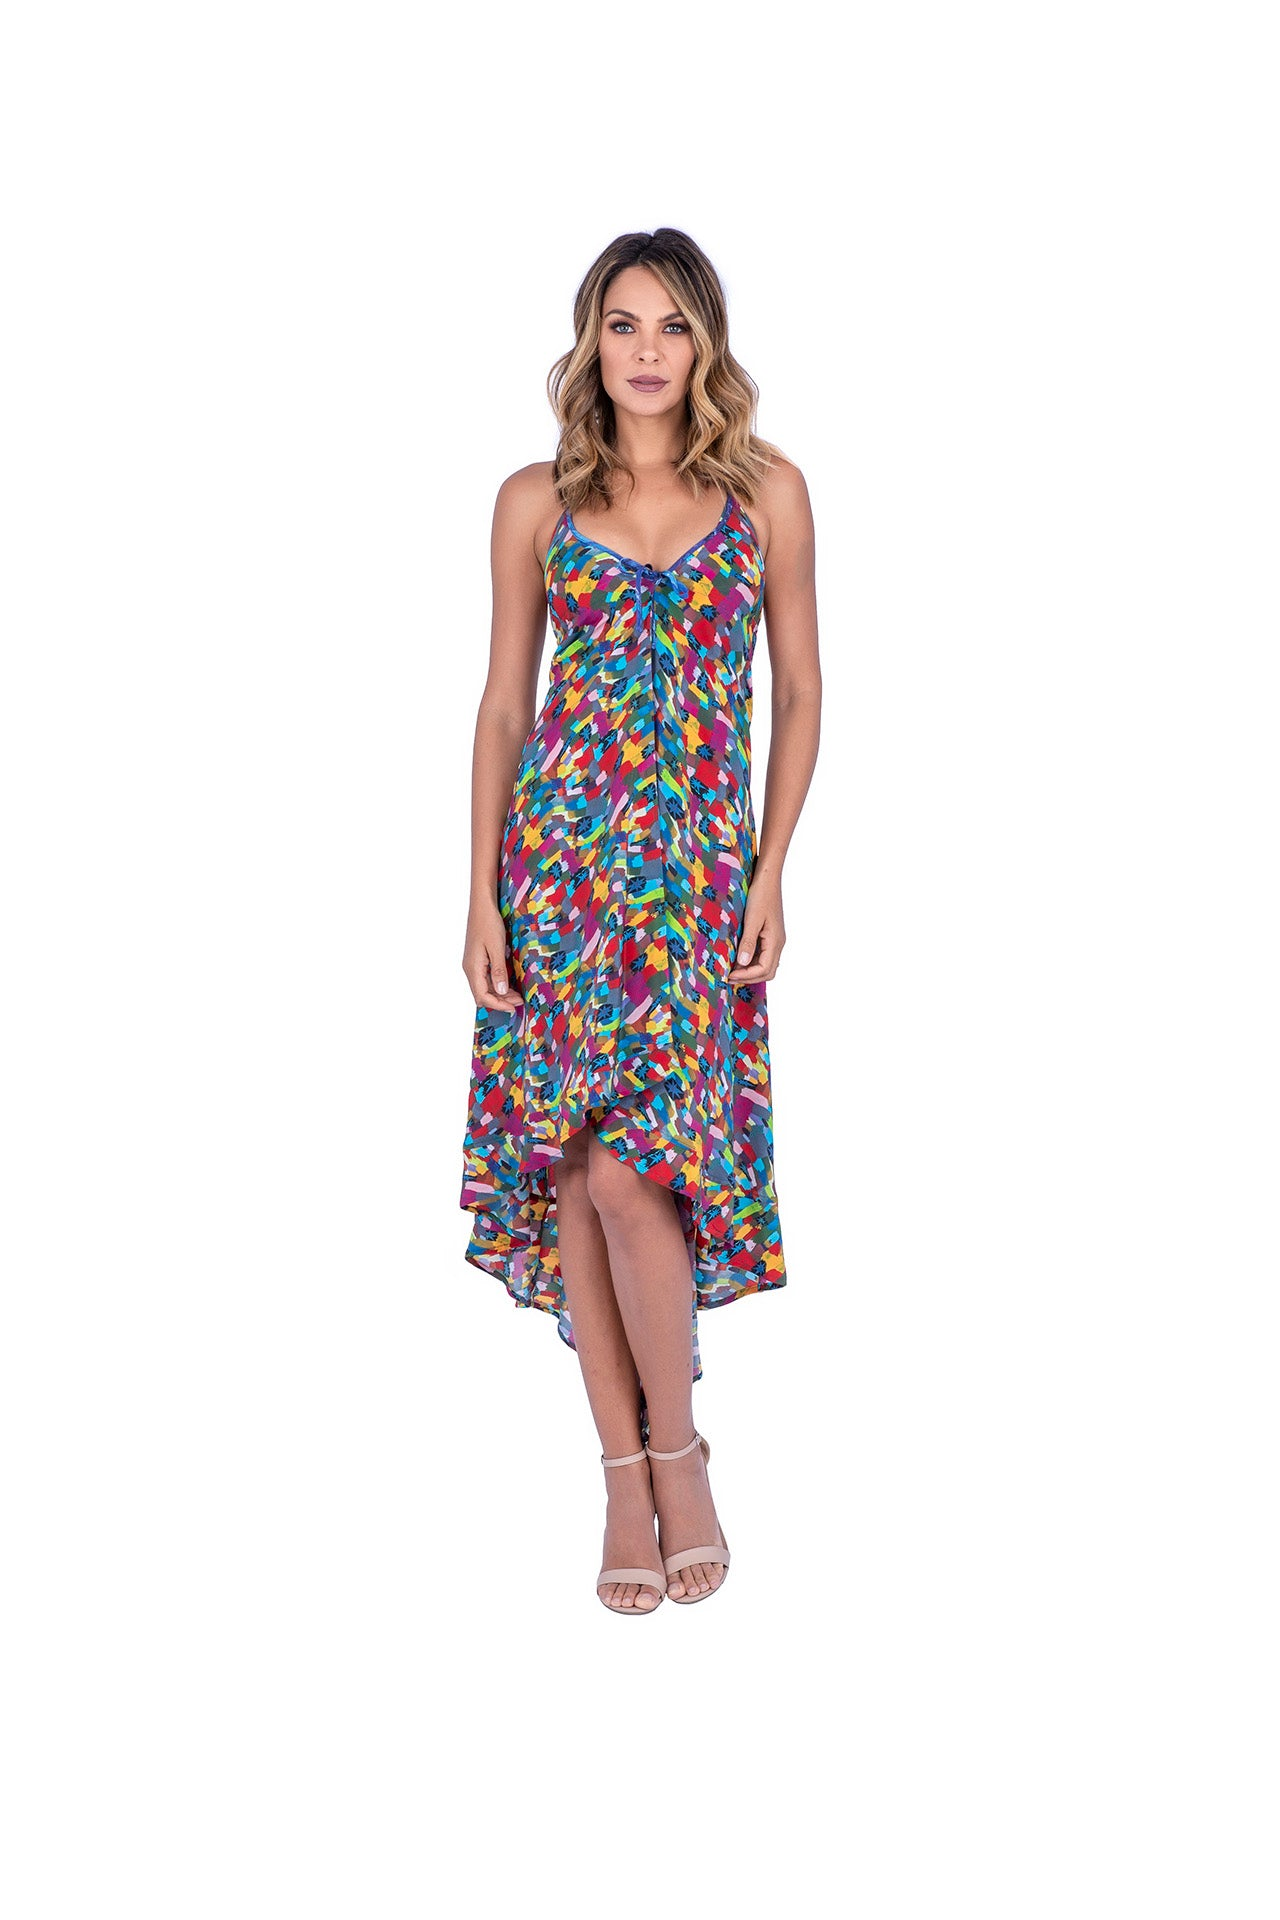 Vivo Silk Dress - Color Star Print Dresses - artTECA